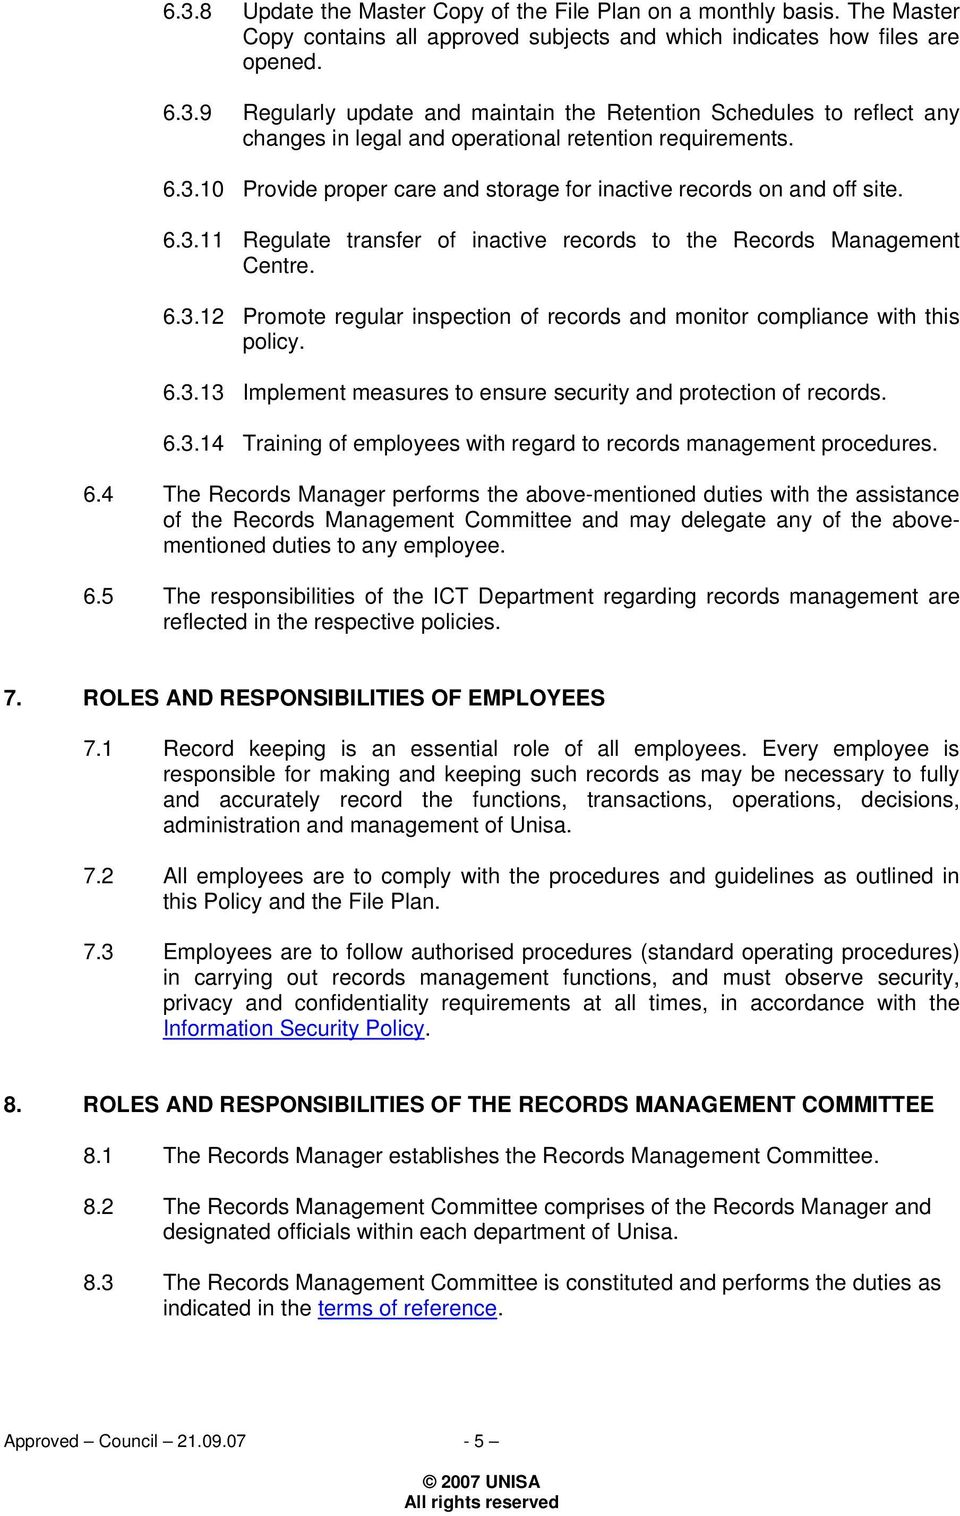 6.3.13 Implement measures to ensure security and protection of records. 6.